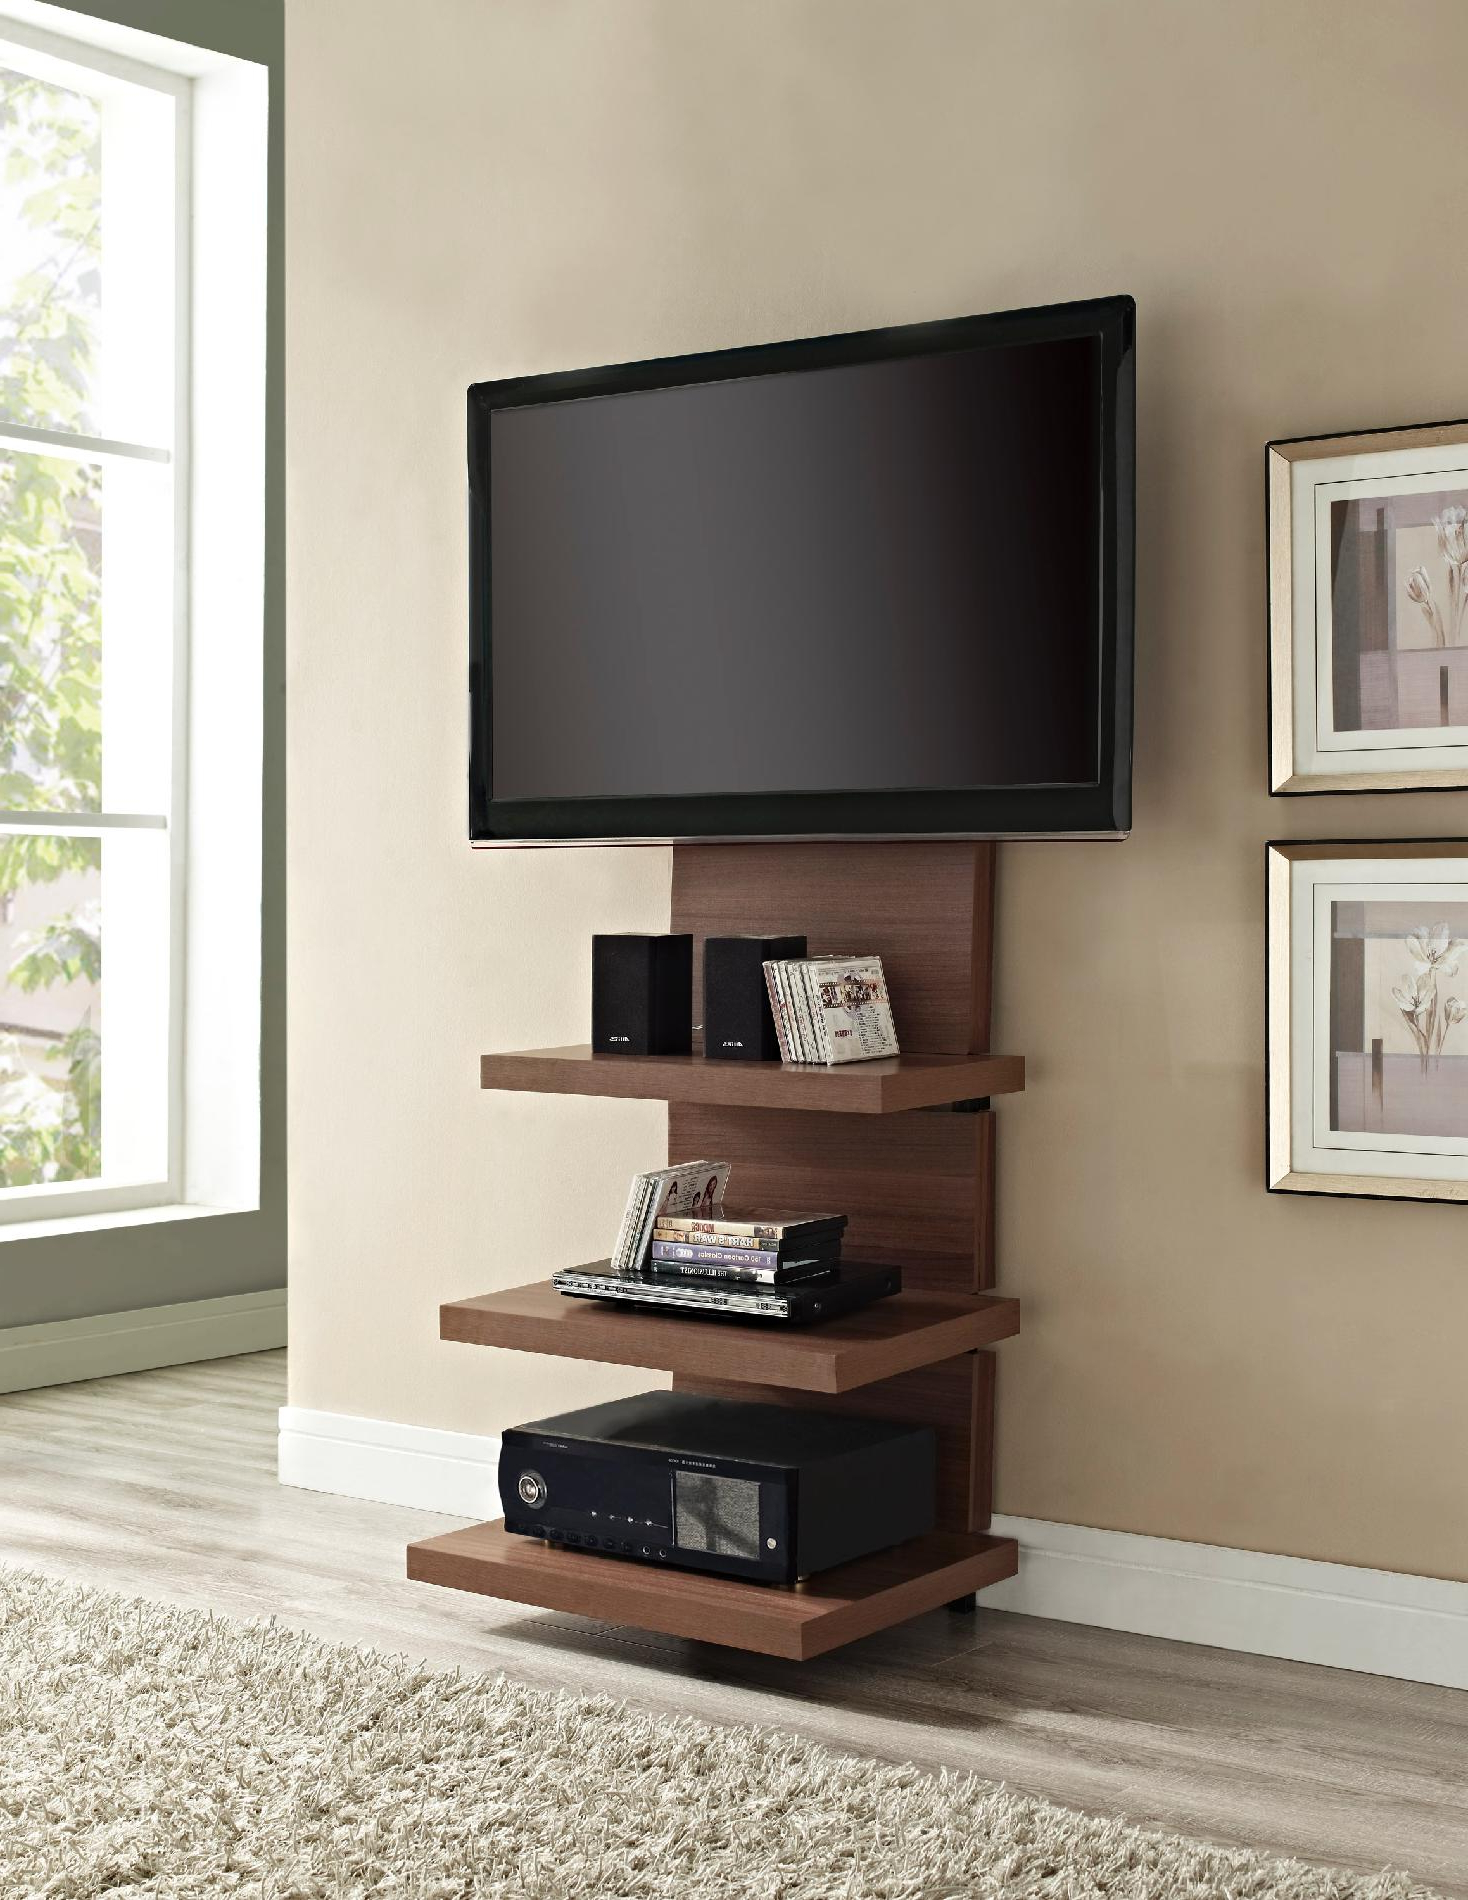 2018 Various Tv Stands For Flat Screens – Furnish Ideas For Unique Tv Stands For Flat Screens (Gallery 4 of 20)